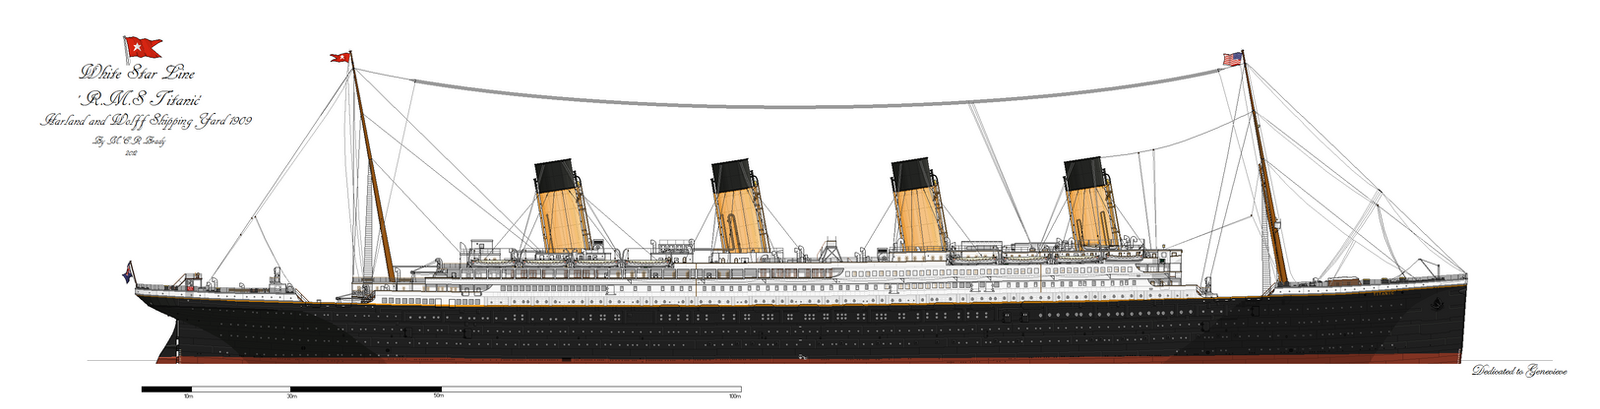 RMS Titanic: Waterline Profile. (1912) by alotef